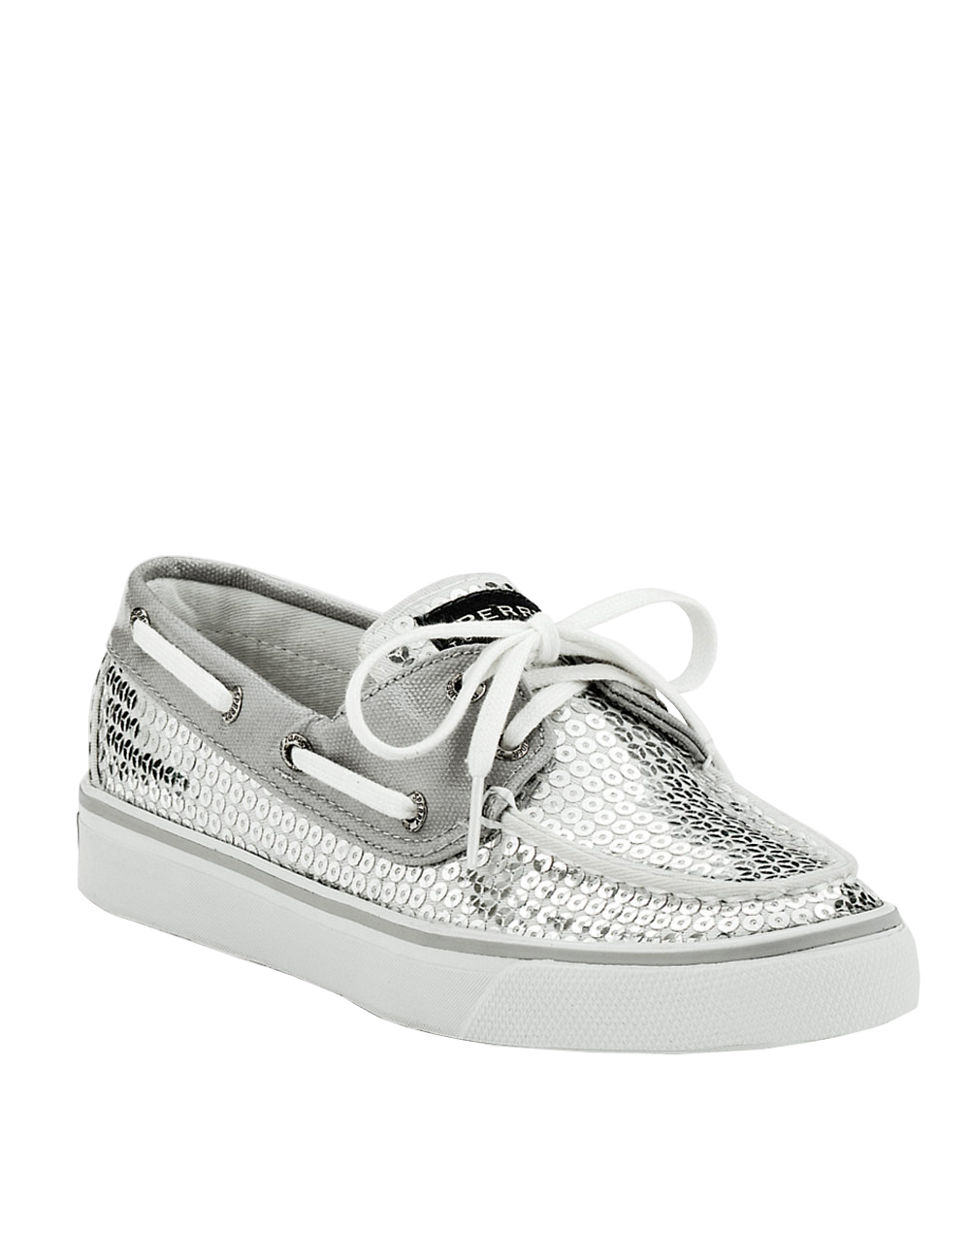 Sperry Top Sider Sequin Shoes